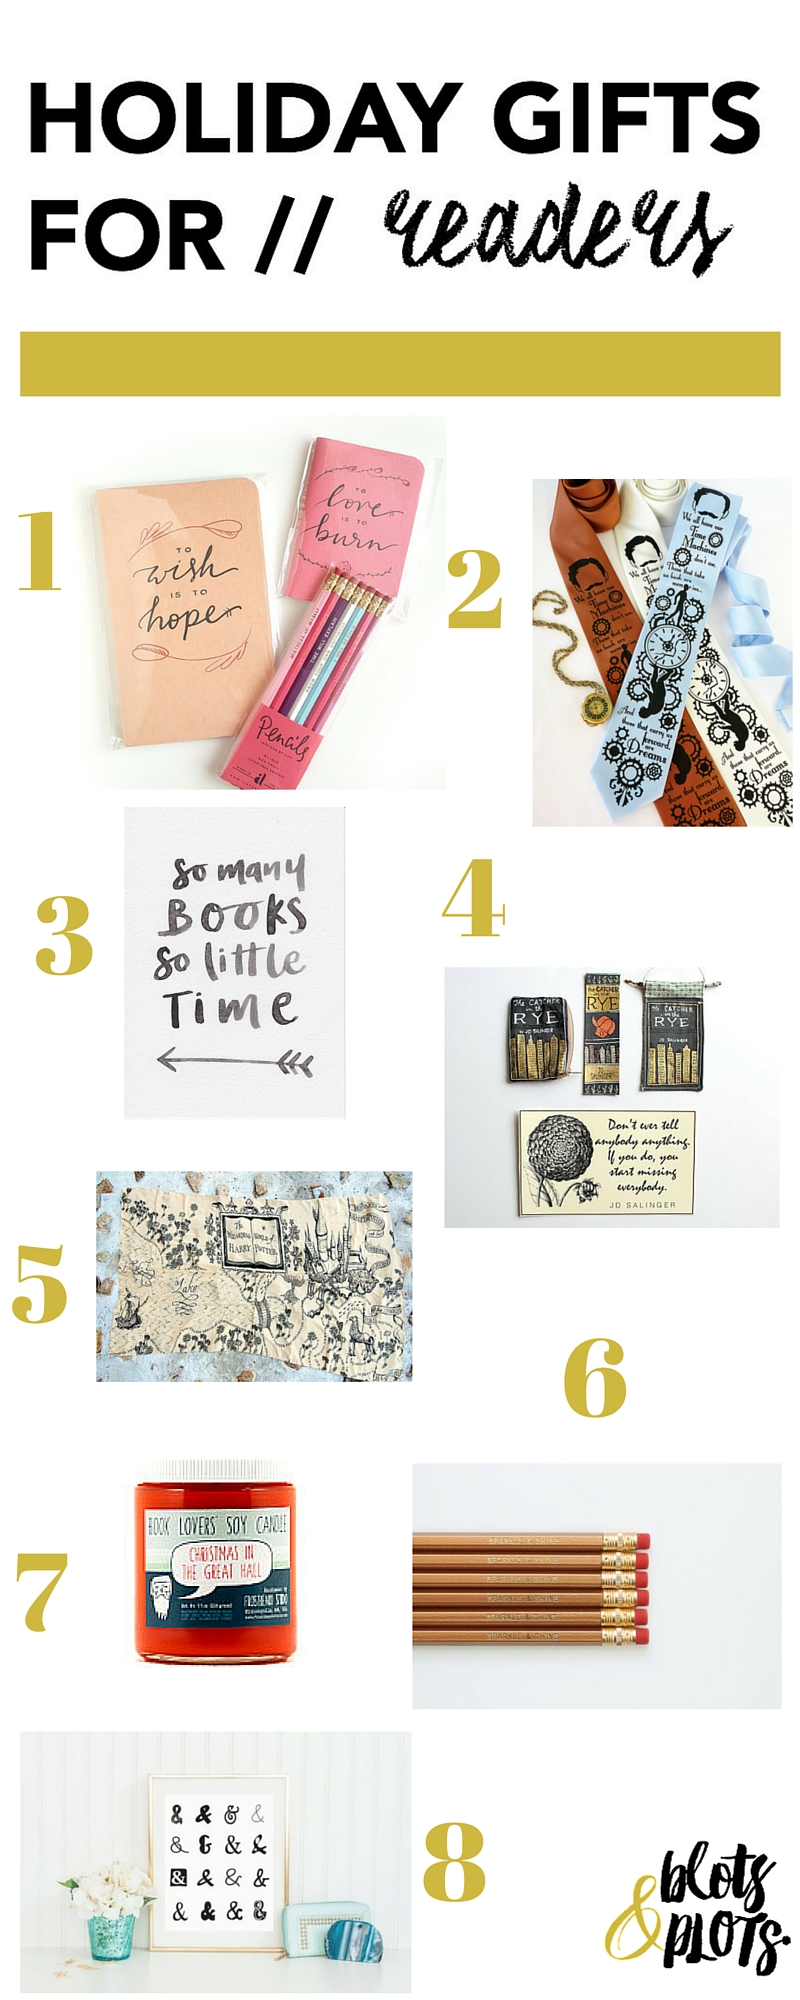 2015 Holiday Gifts for Readers | Blots & Plots